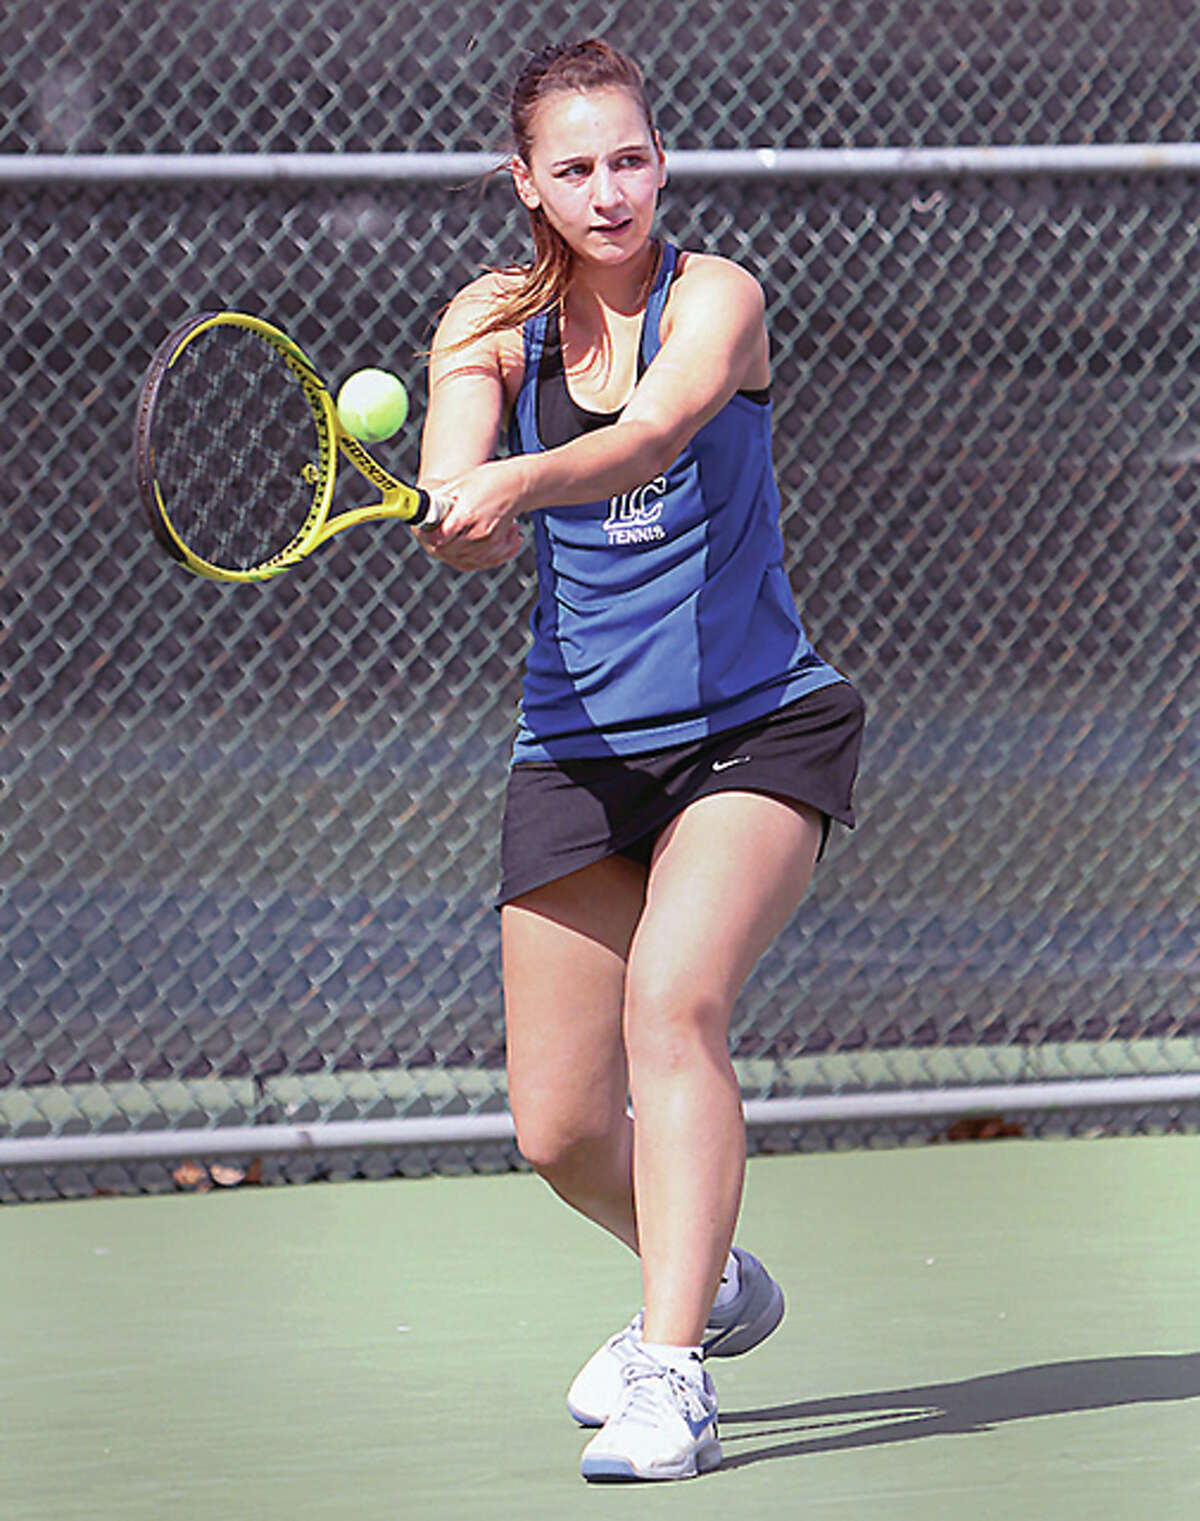 LCCC's Merl Schlaeger knocked off Rend Lake's Jade Knox at No. 1 singles, 6-0, 6-3 at No. 1 singles to help earn the Trailblazers a 9-0 win over Rend Lake and a berth at the NJCAA National tennis tournament, set for May 7-12 at Tyler Junior College in Tyler, Texas